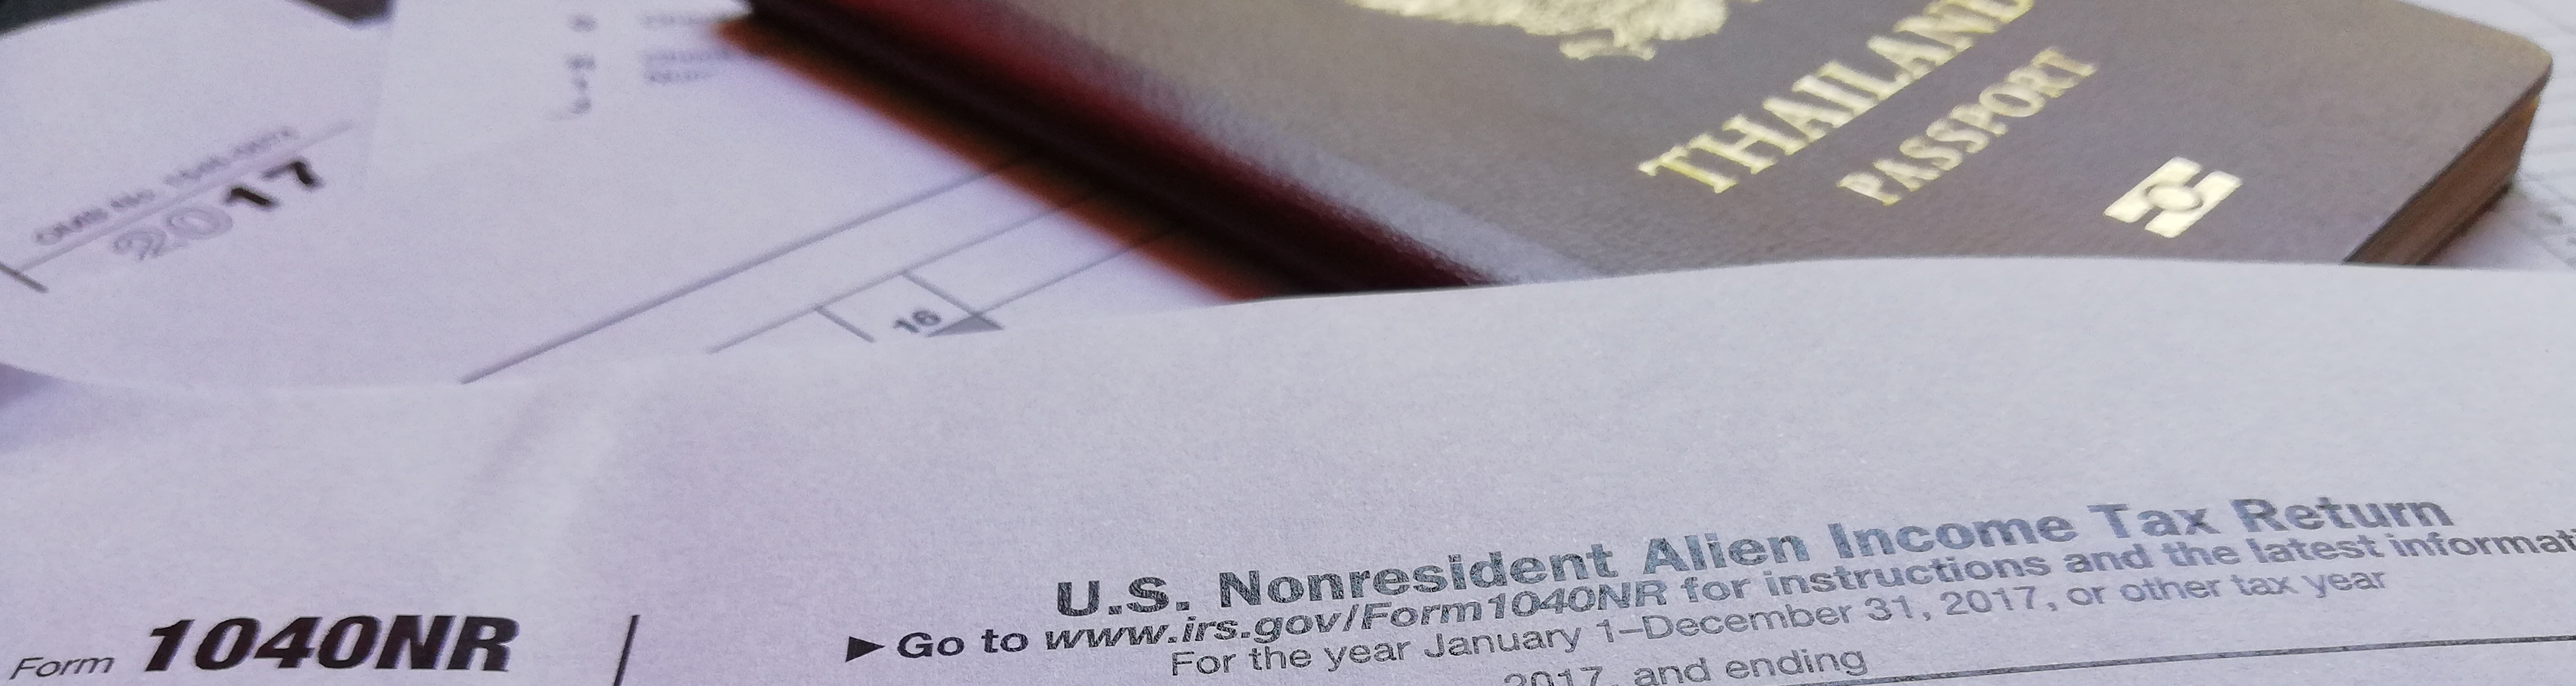 Filing Taxes: A Nonresident's Experiences | Tax Policy Center